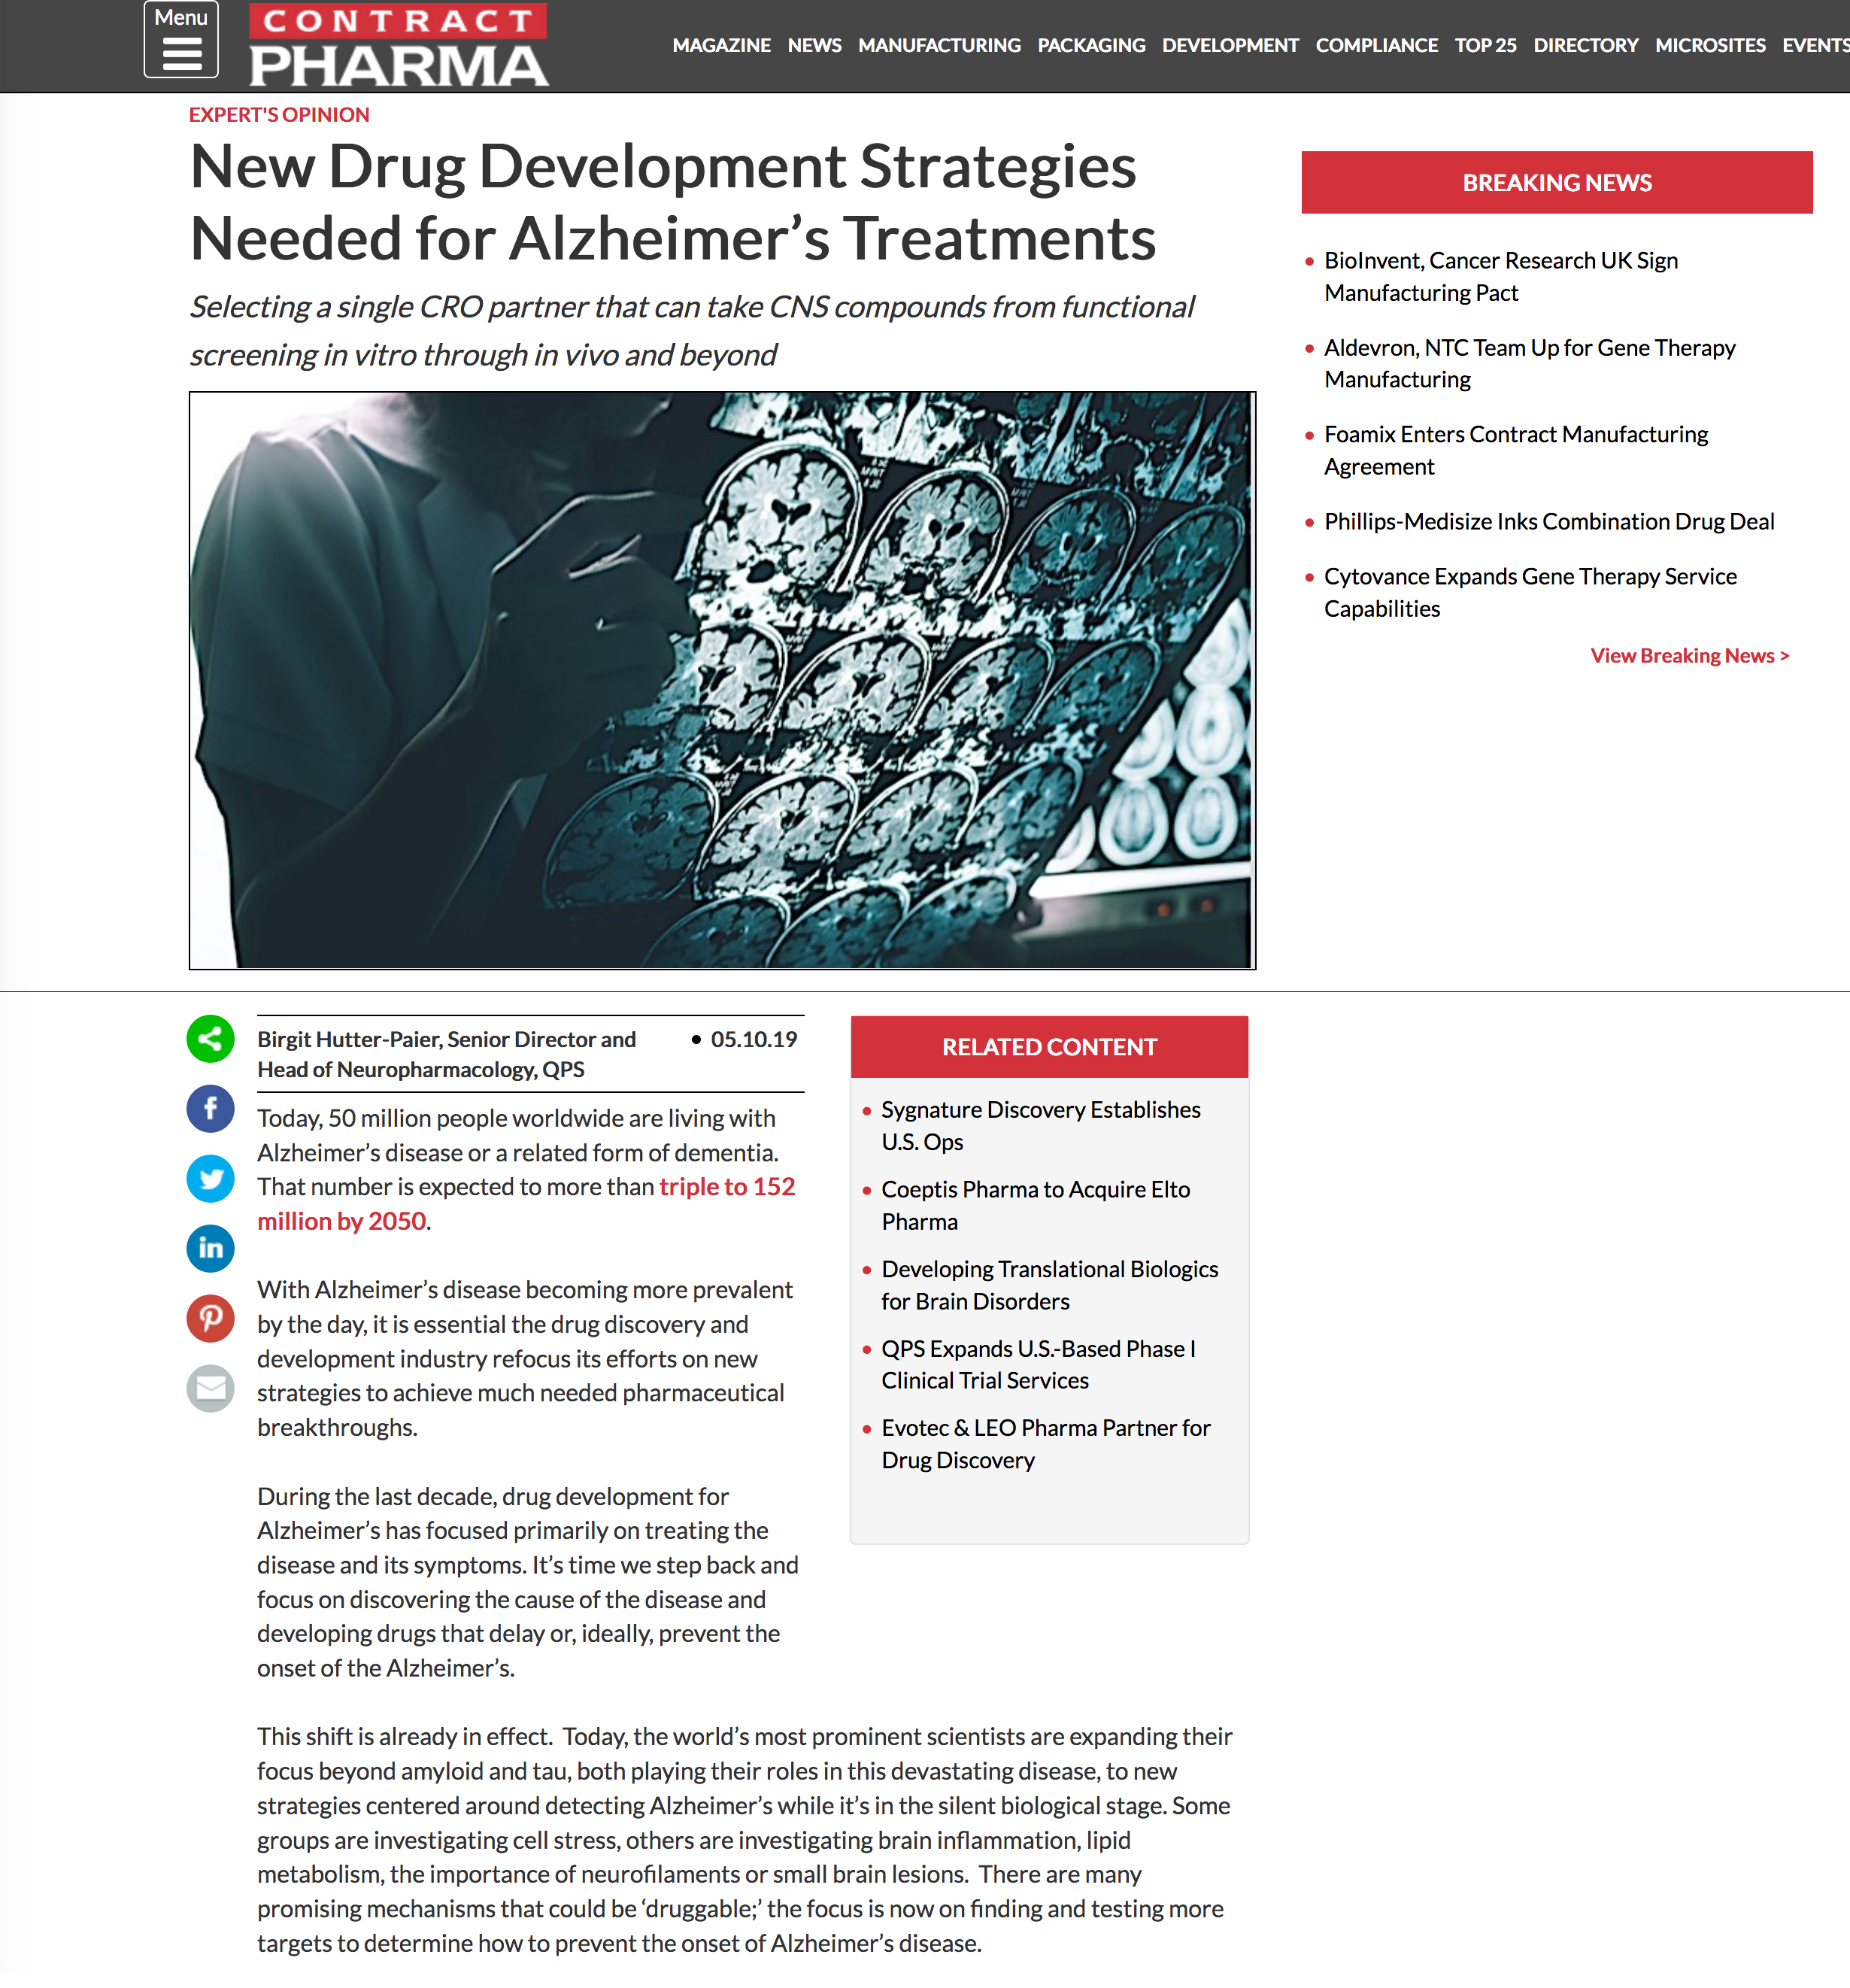 https://www.contractpharma.com/contents/view_experts-opinion/2019-05-10/new-drug-development-strategies-needed-for-alzheimers-treatments/